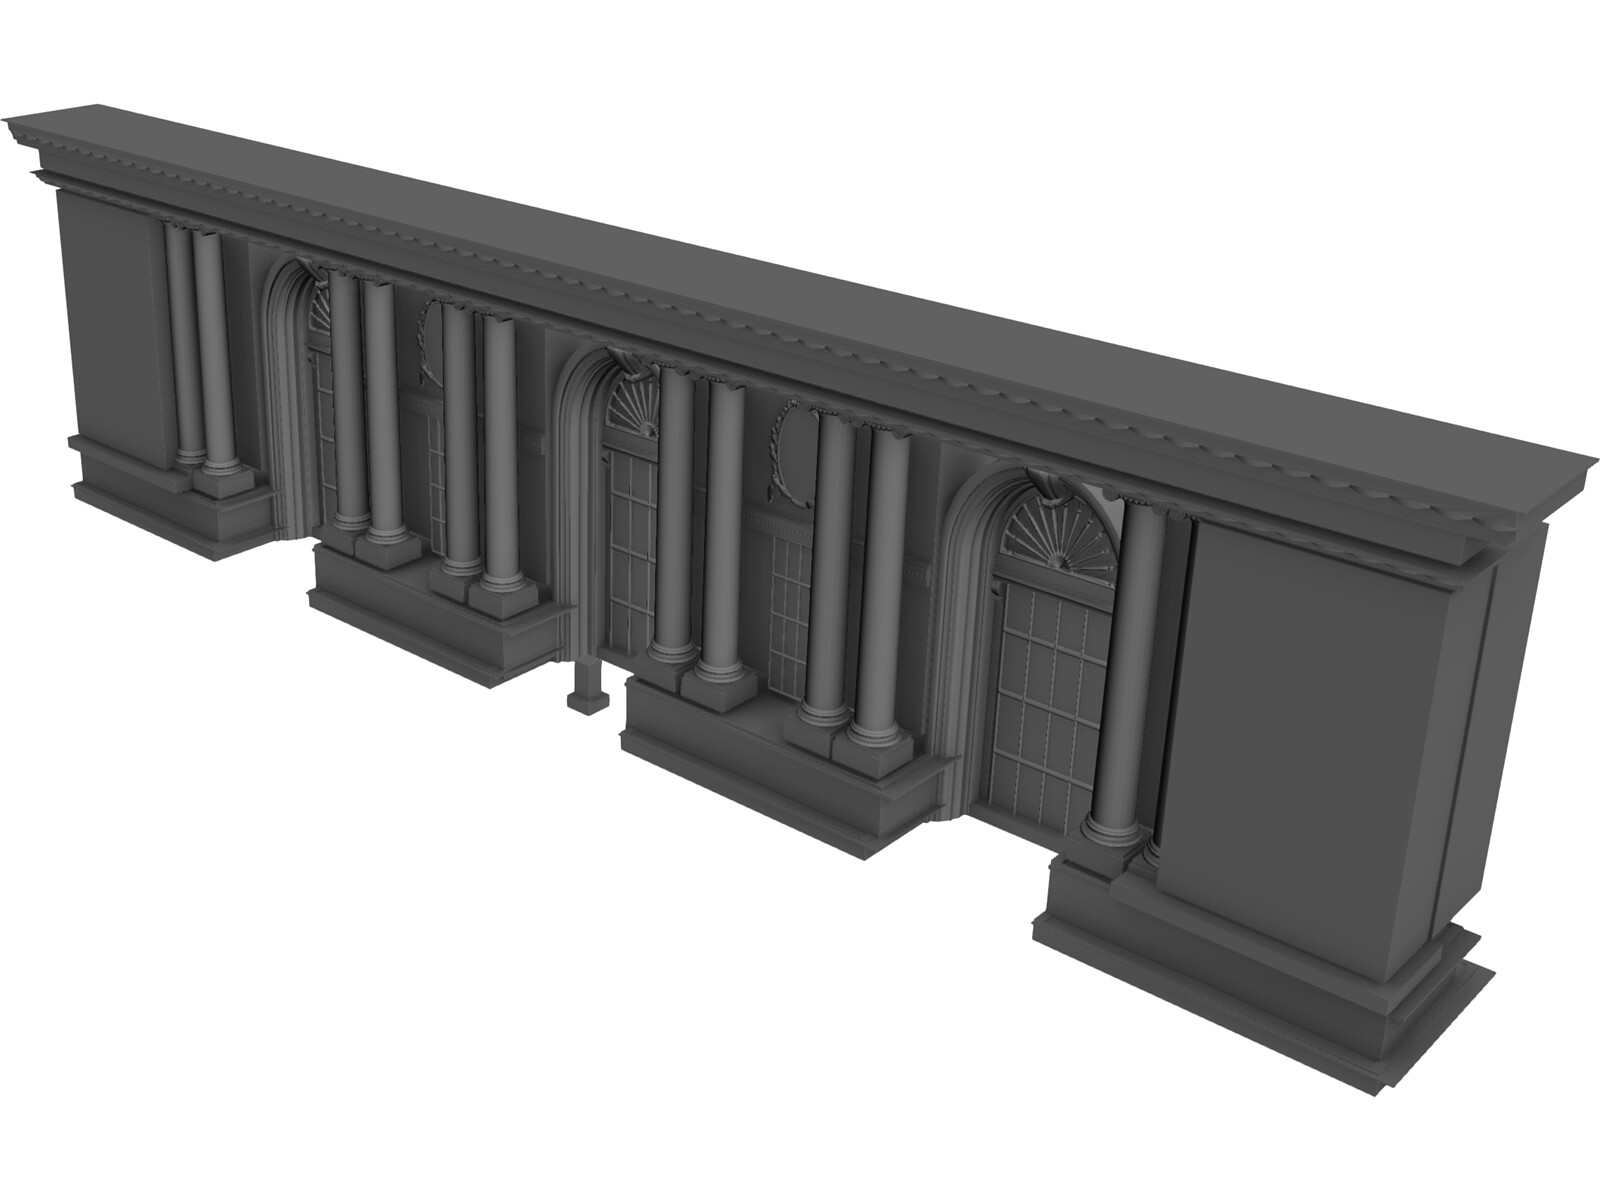 GC Station NYC Frontside 3D Model